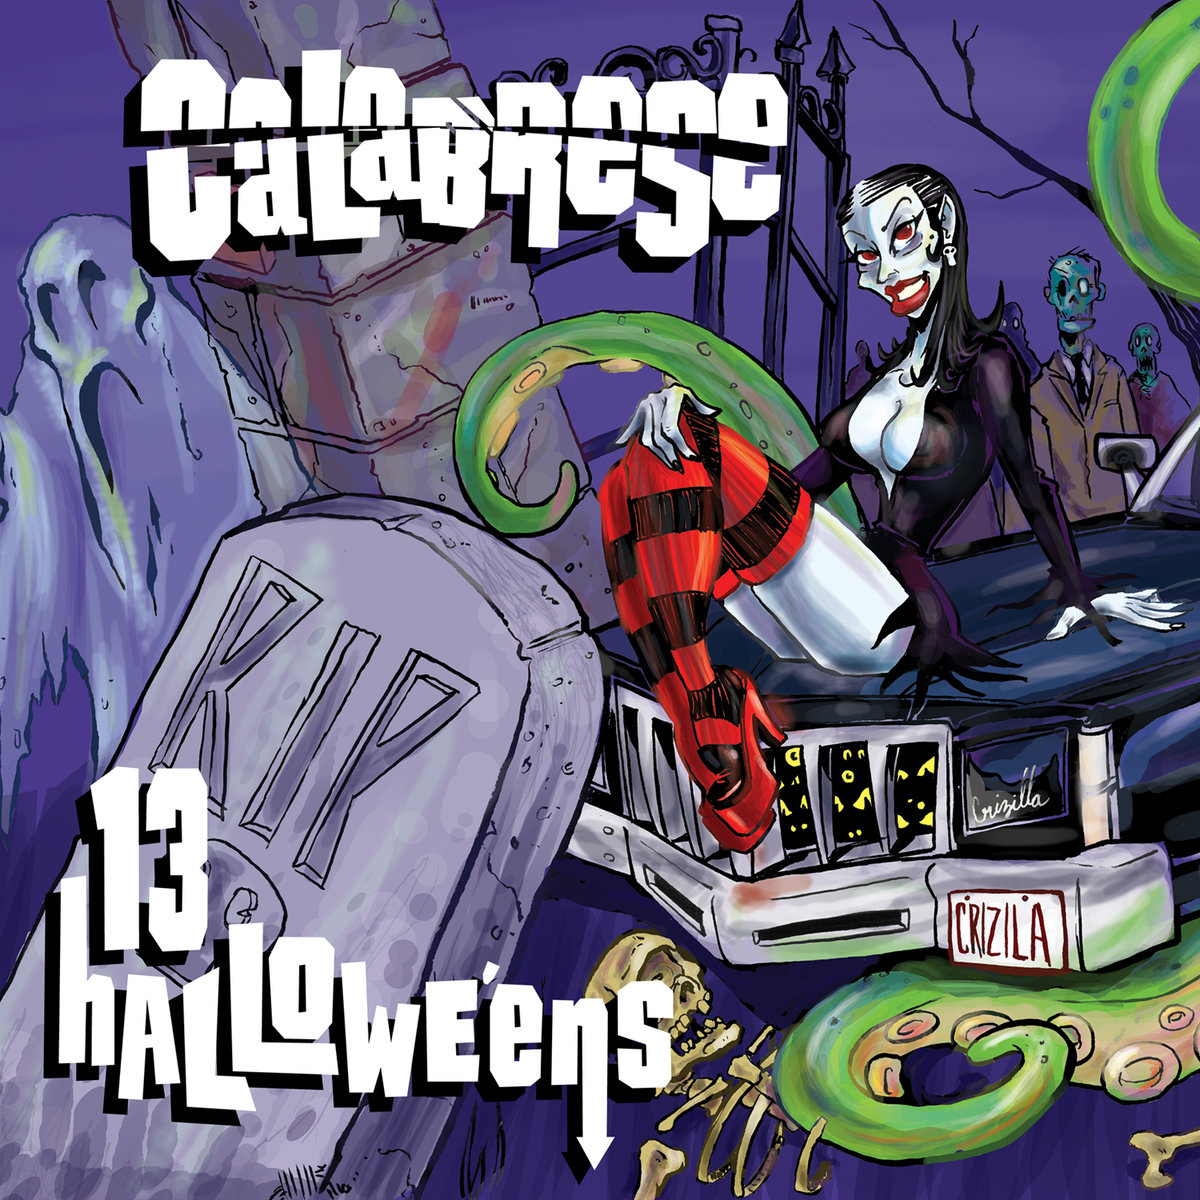 13 halloweens by calabrese - Calabrese 13 Halloweens